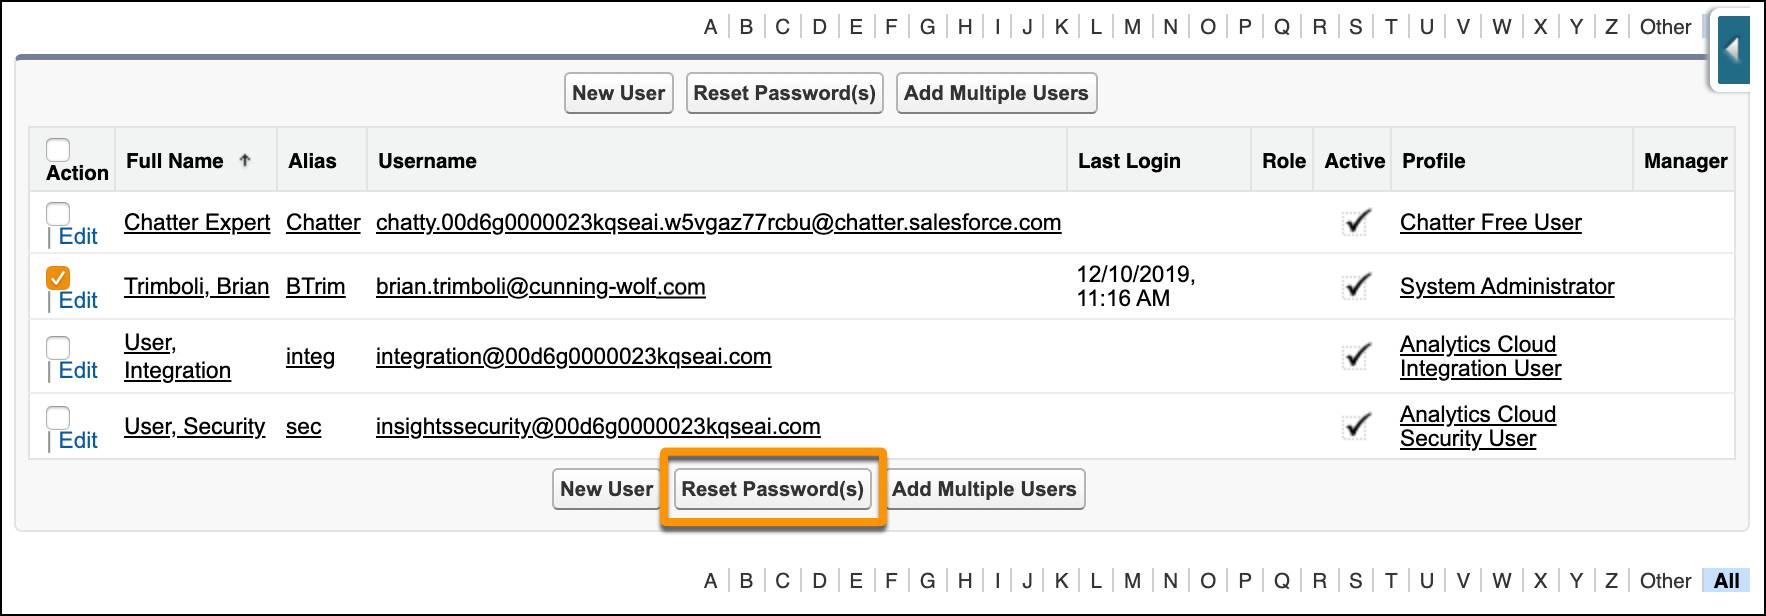 The list of users in Setup with the Reset Password(s) button called out.